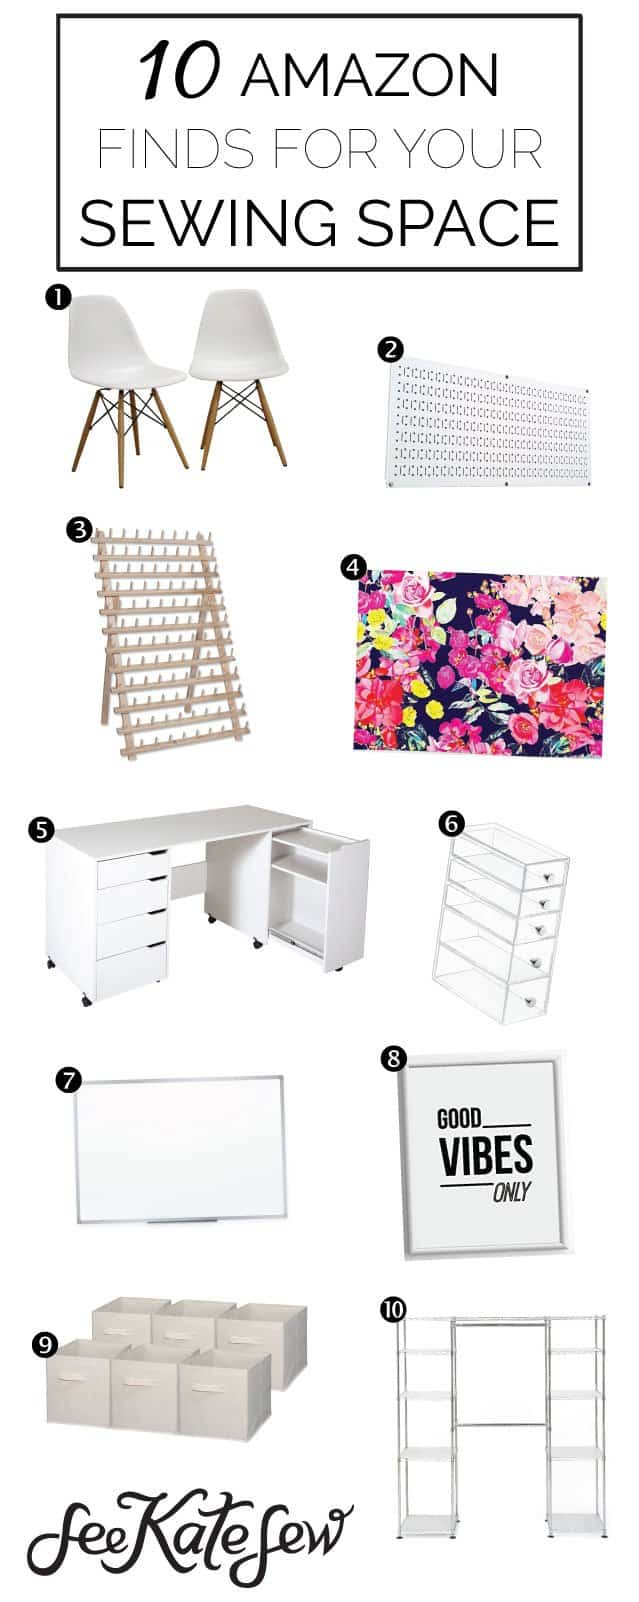 10 Amazon Finds for Your Sewing Space | sewing products | sewing must haves | sewing room ideas | decorating the sewing room || See Kate Sew #sewingroom #sewingmusthaves